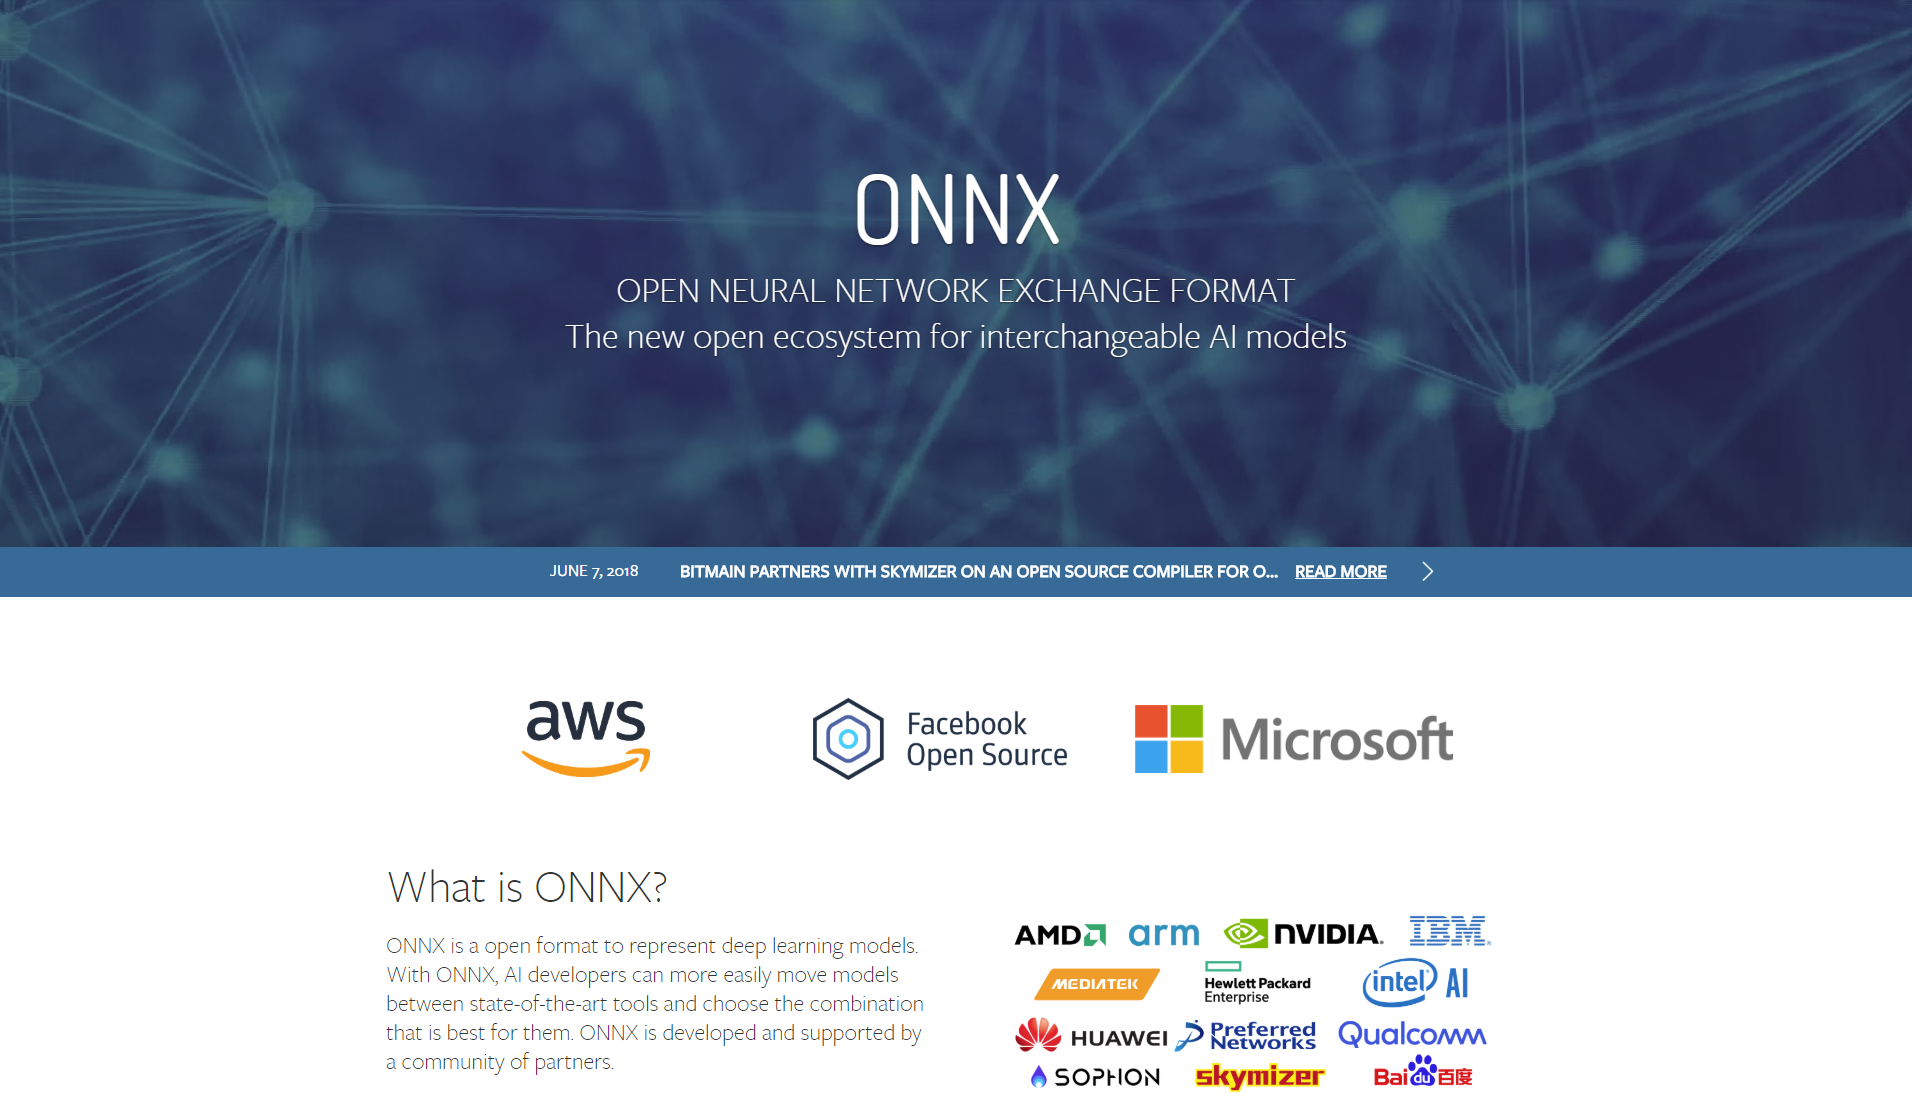 ONNX is an 'open ecosystem for interchangeable AI models